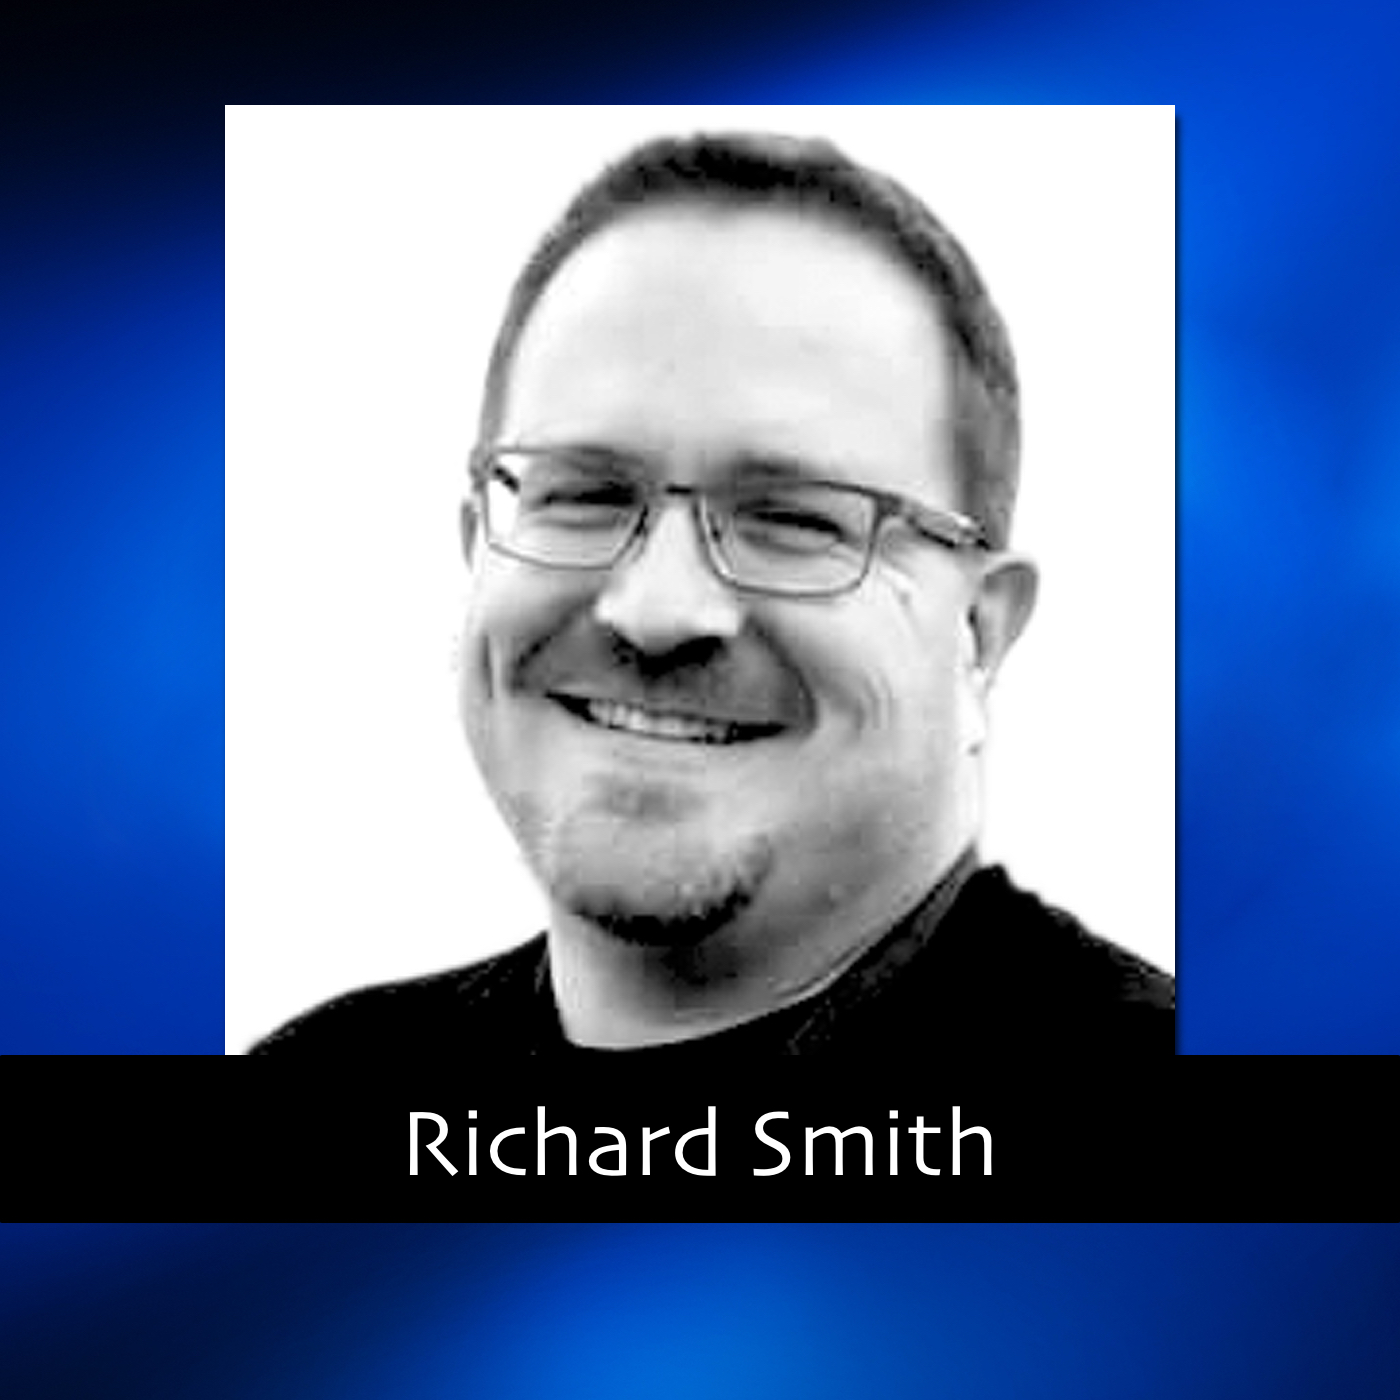 Richard Smith.jpg